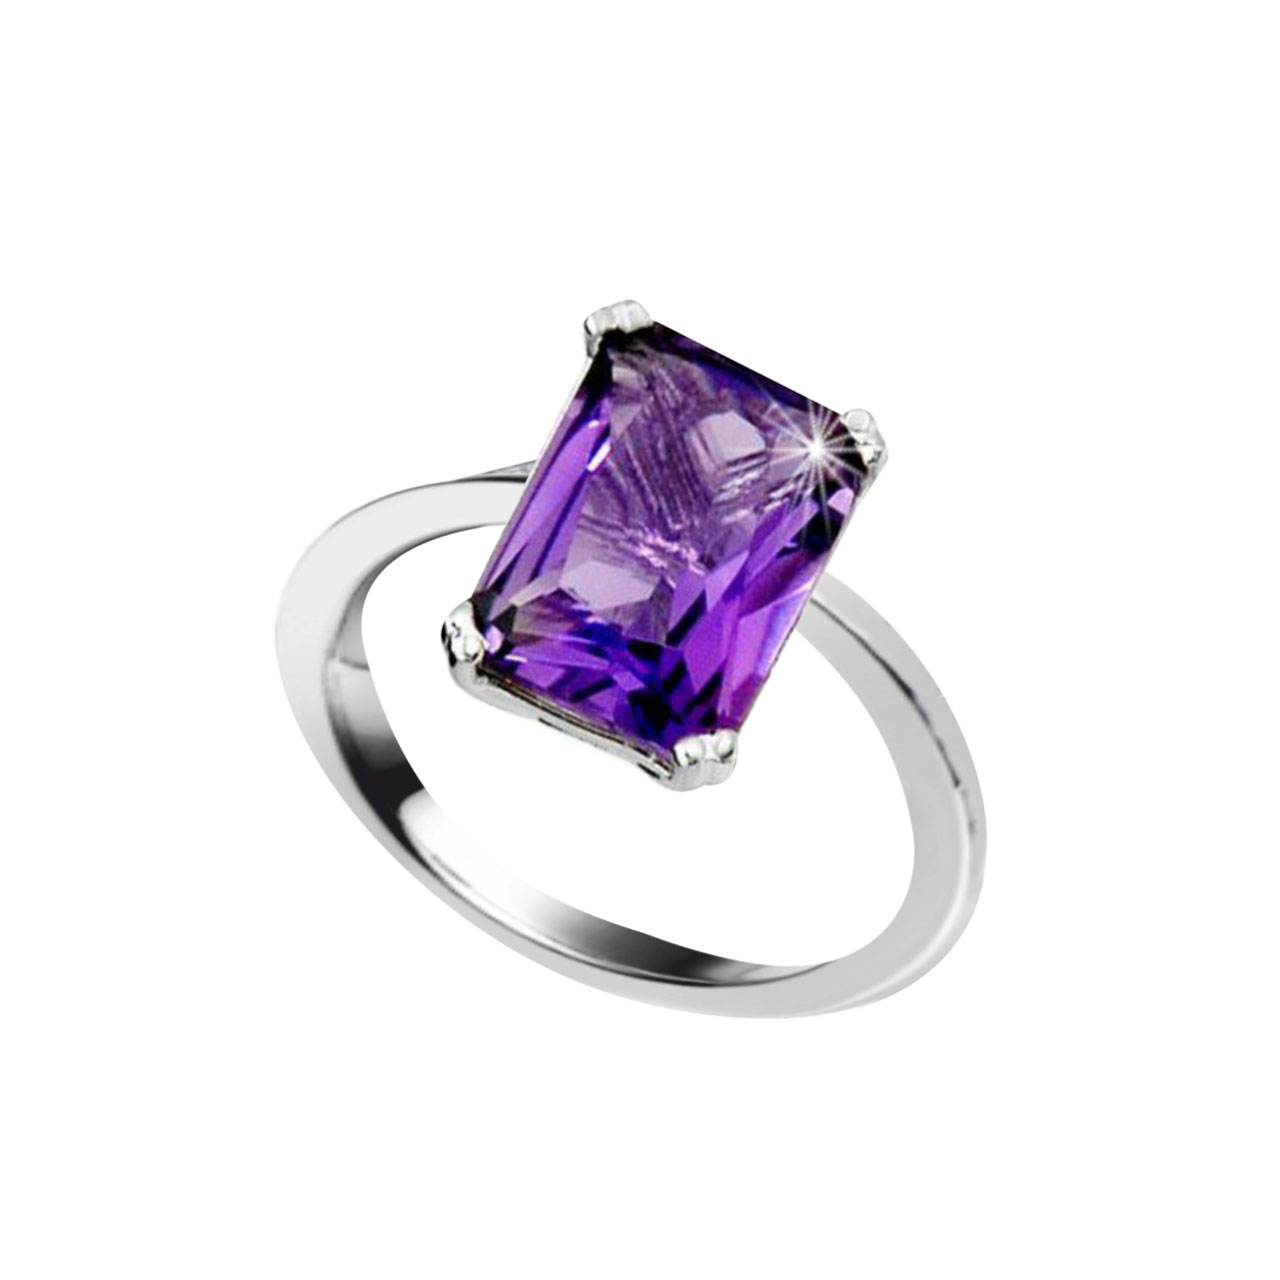 Metaphysical Amethyst Ring